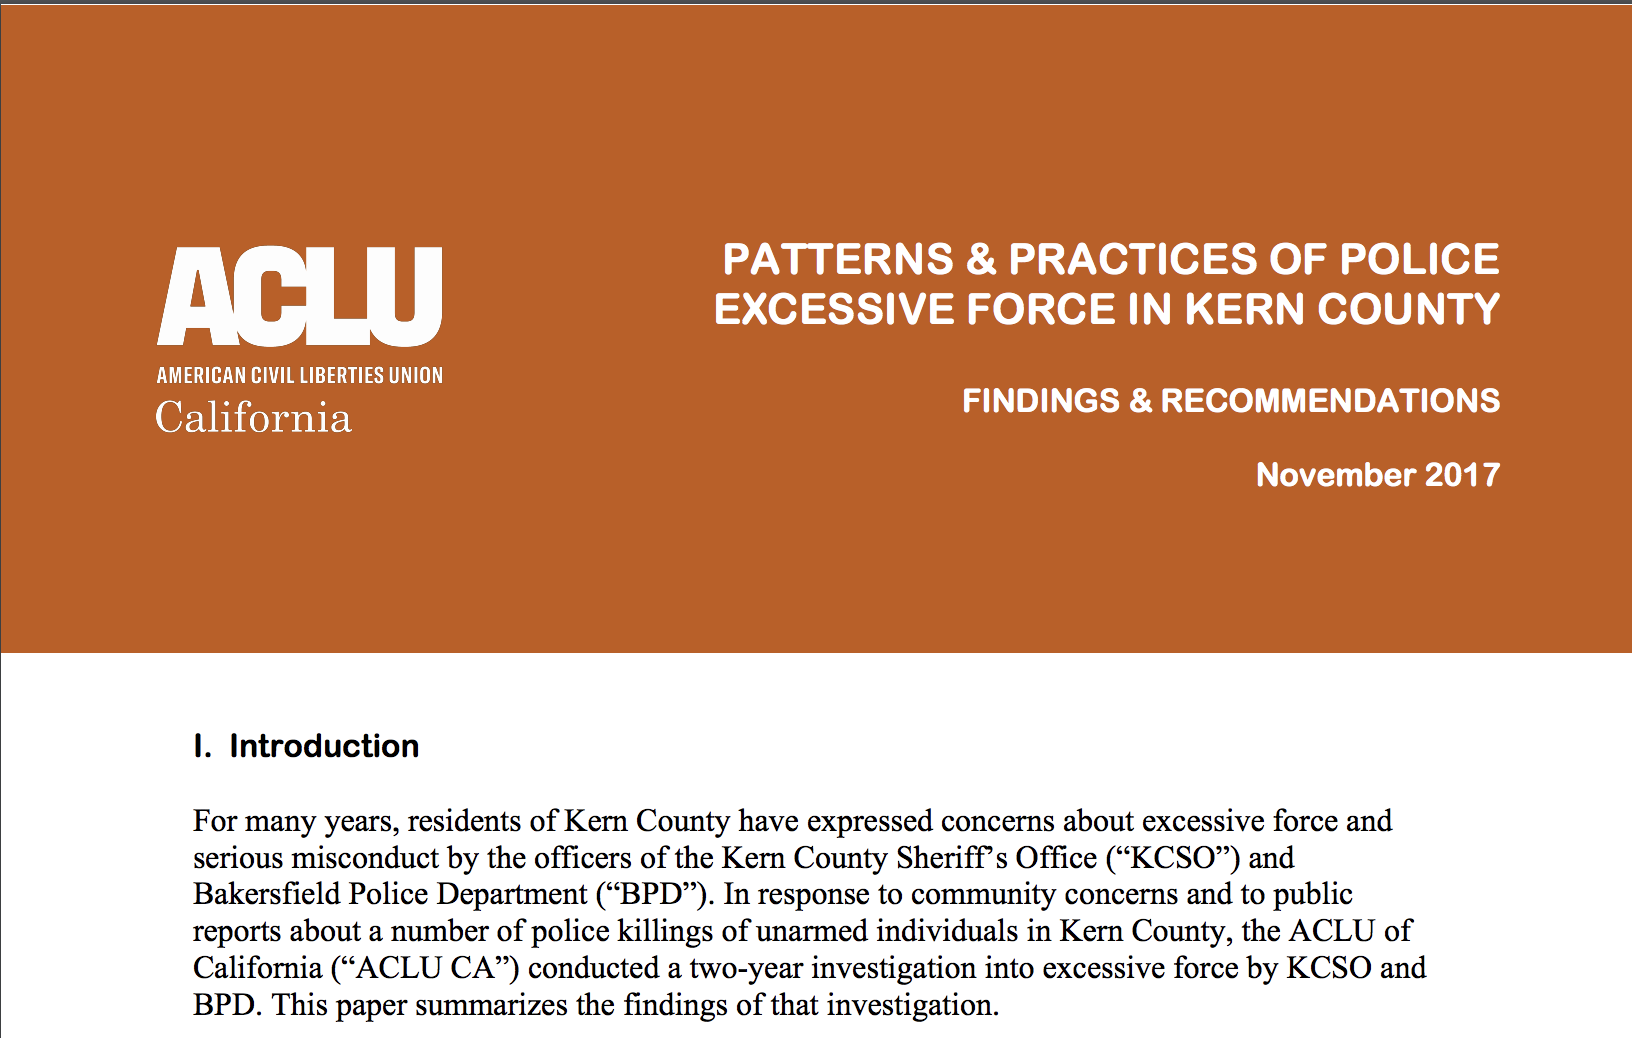 Excessive Of Southern Aclu Police County In Force And Practices California Patterns Kern